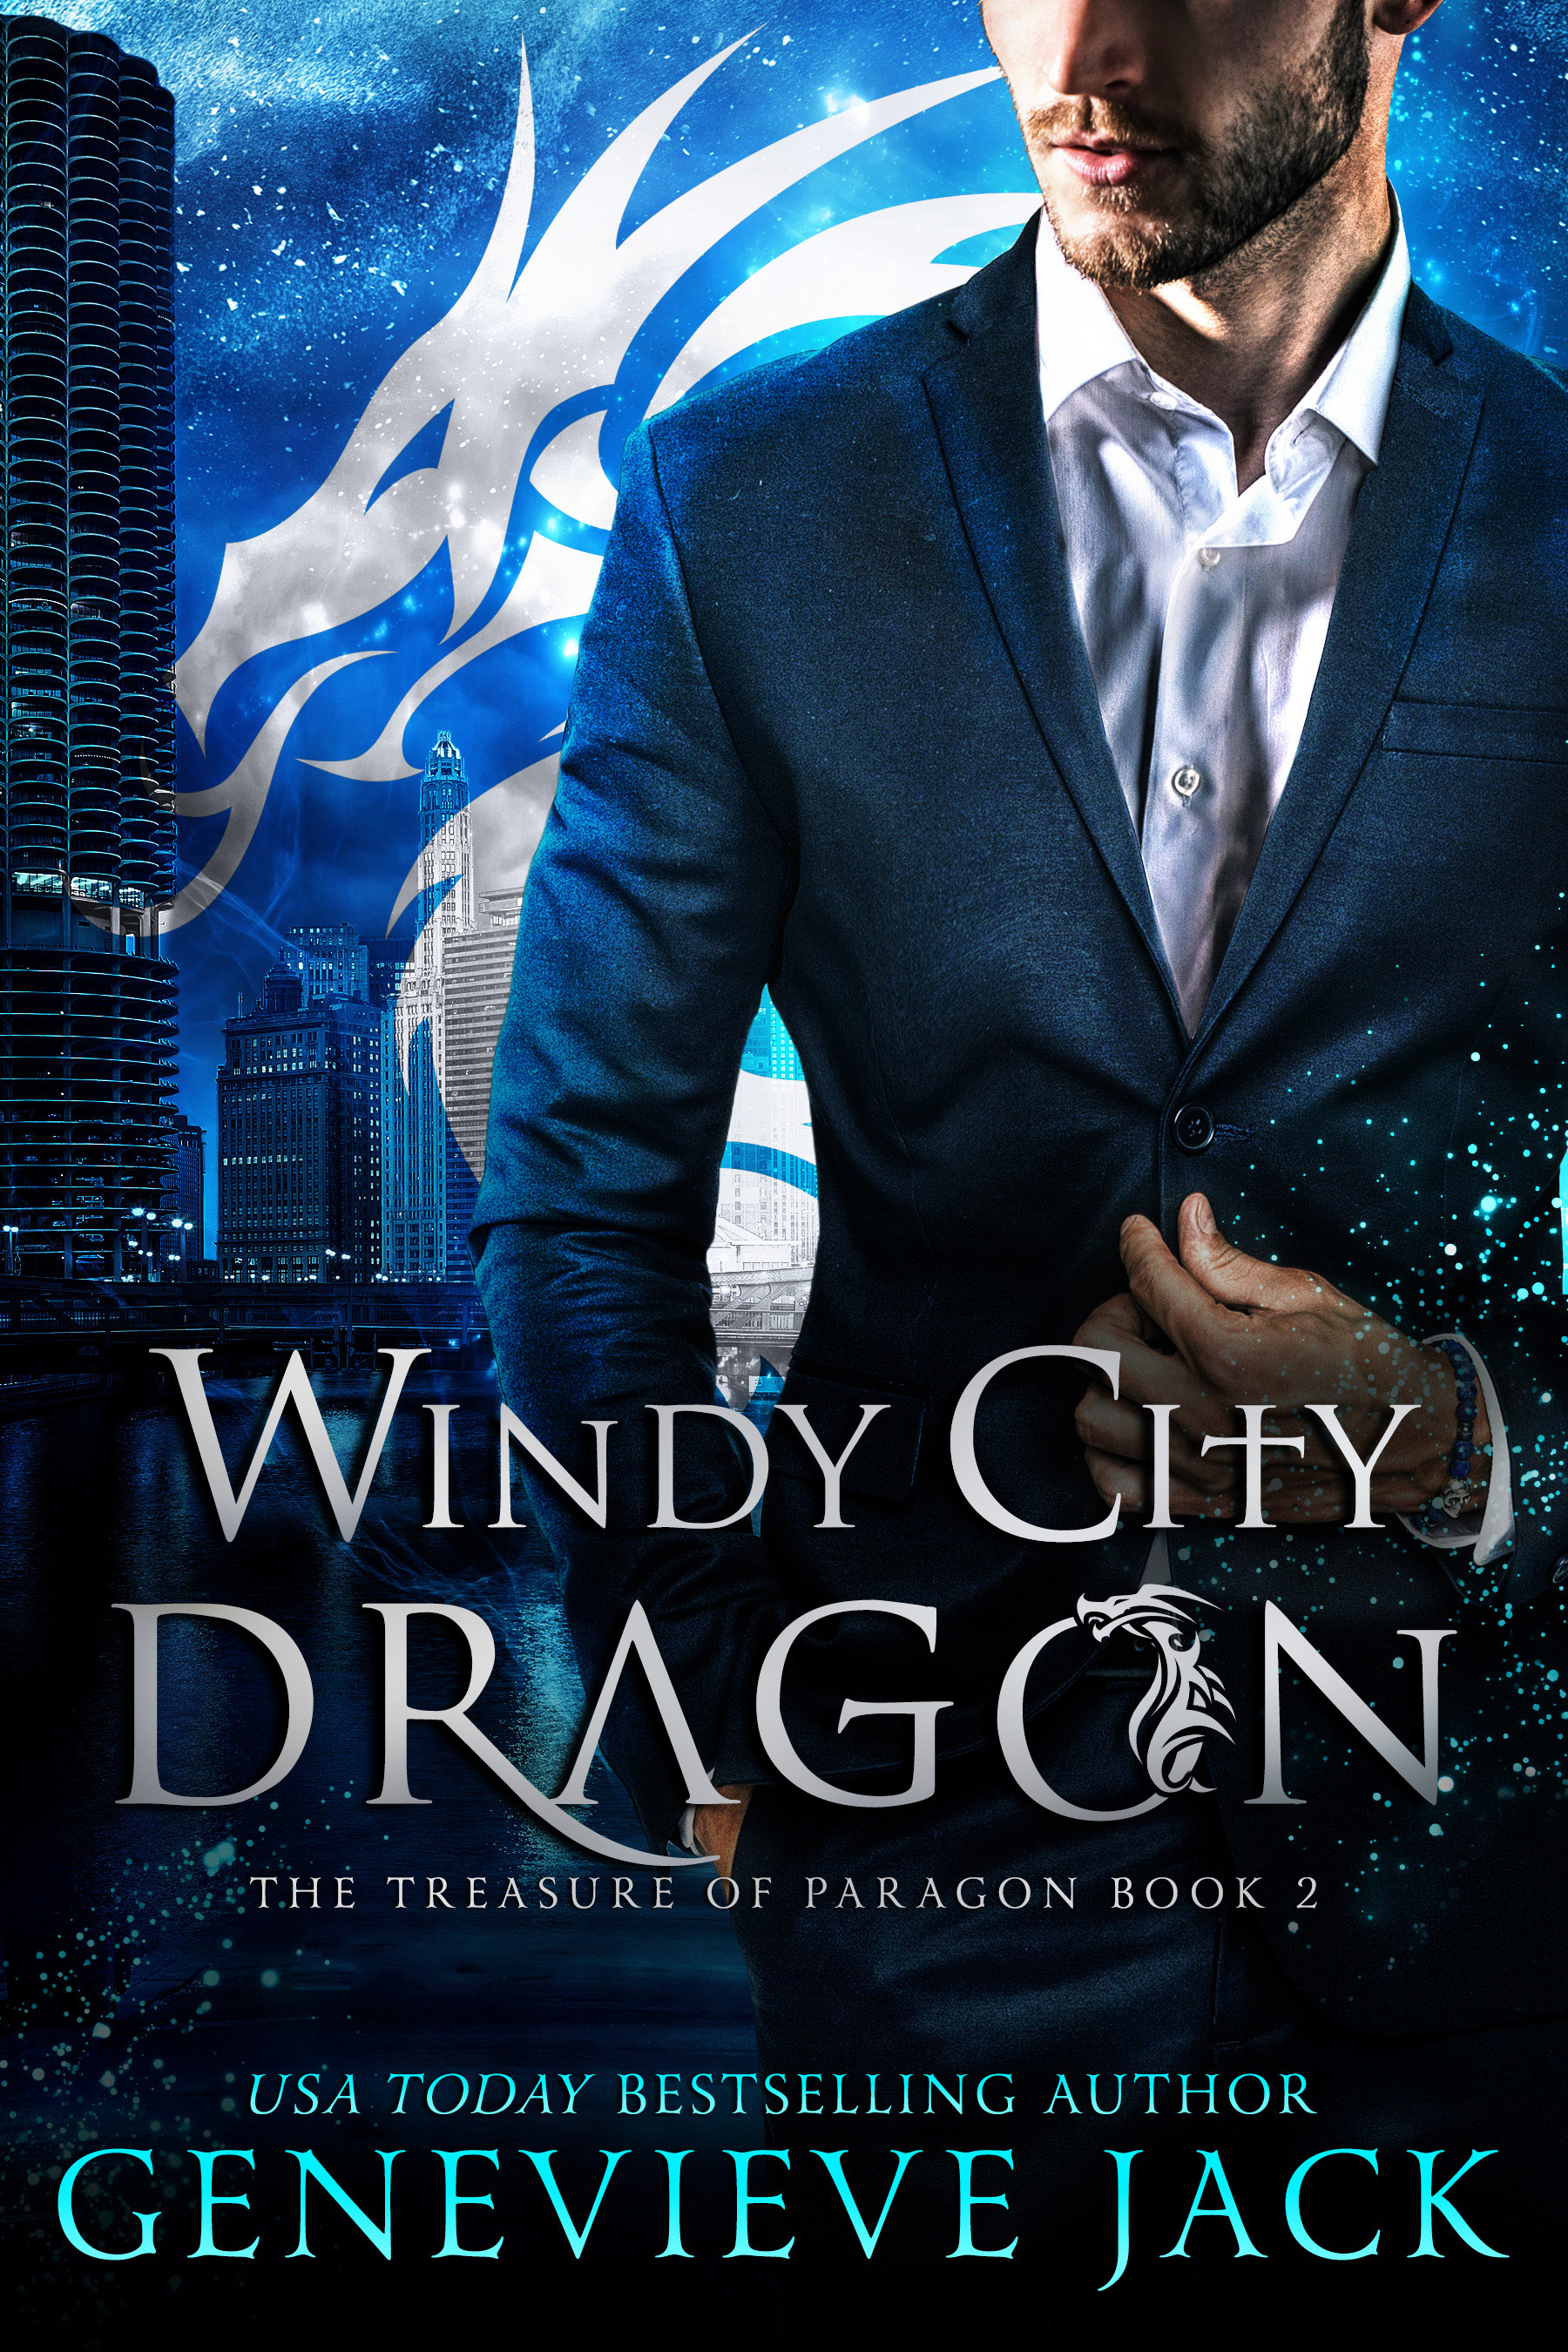 Windy City Dragon - by Genevieve Jack